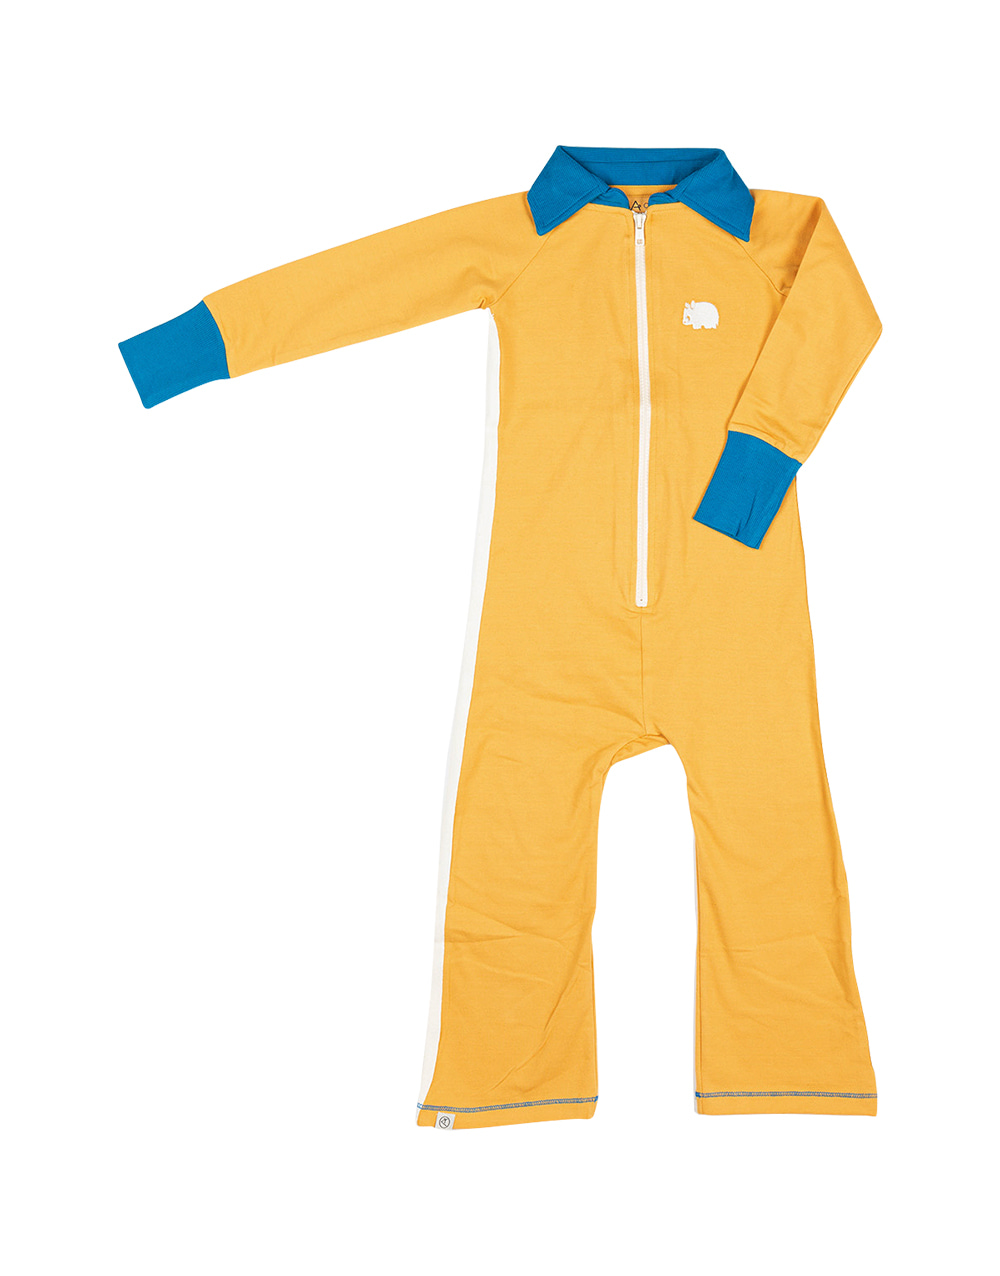 ALBA ORIGINAL   Lemar Flipsuit   Bright Gold